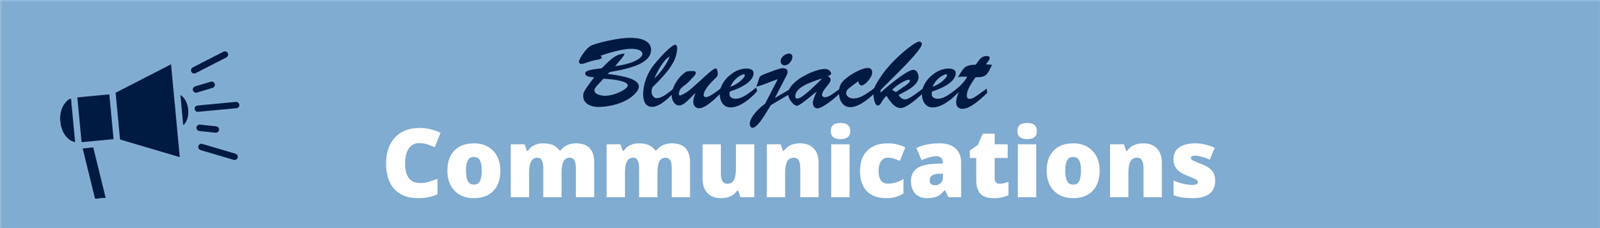 Blue District Communications Banner